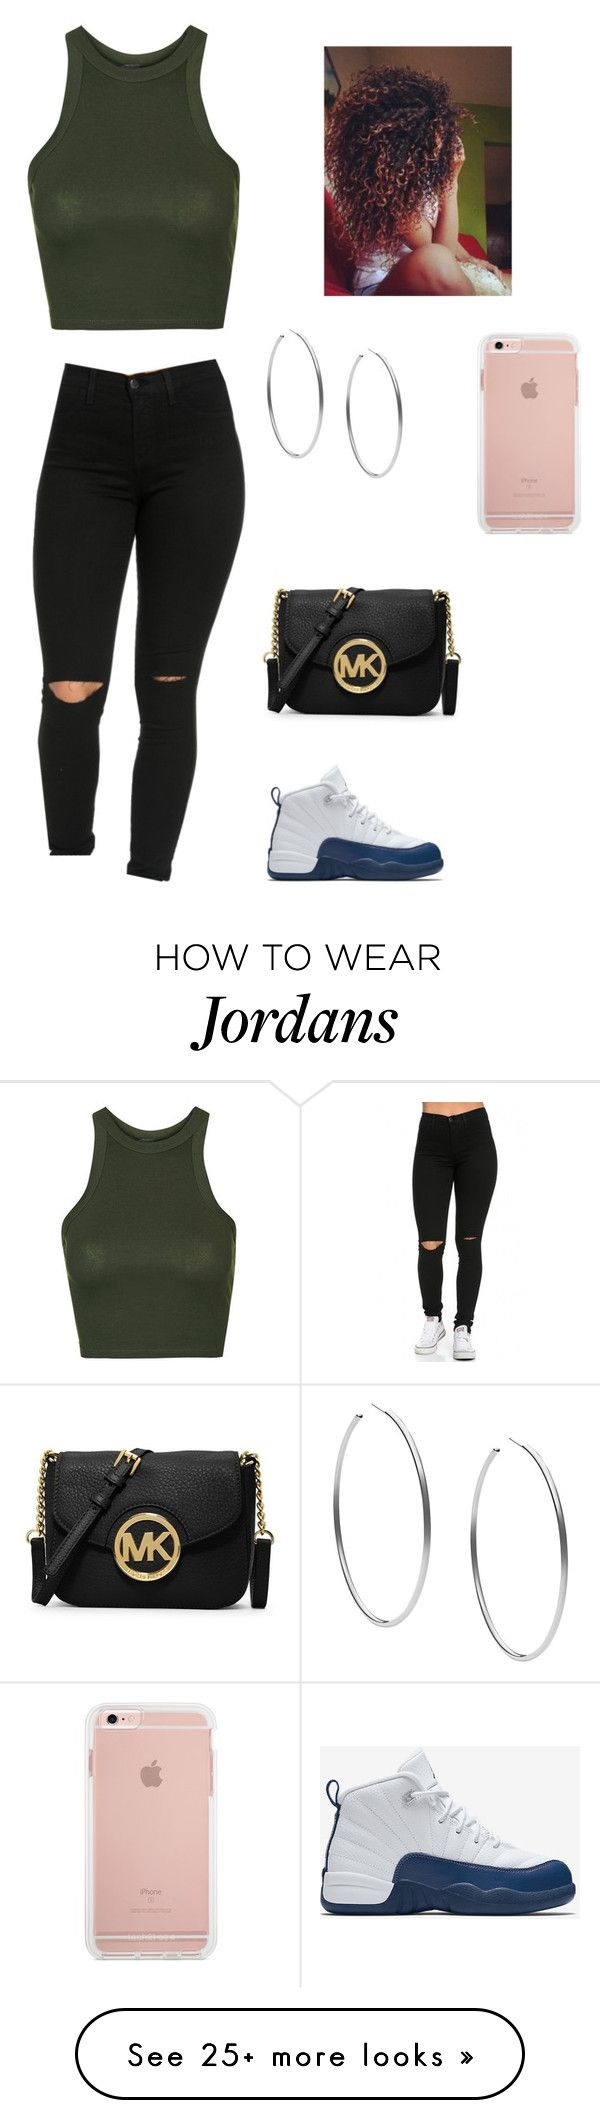 """Untitled #111"" by ivymichele on Polyvore featuring Topshop, NIKE, Michael Kors and MICHAEL Michael Kors"